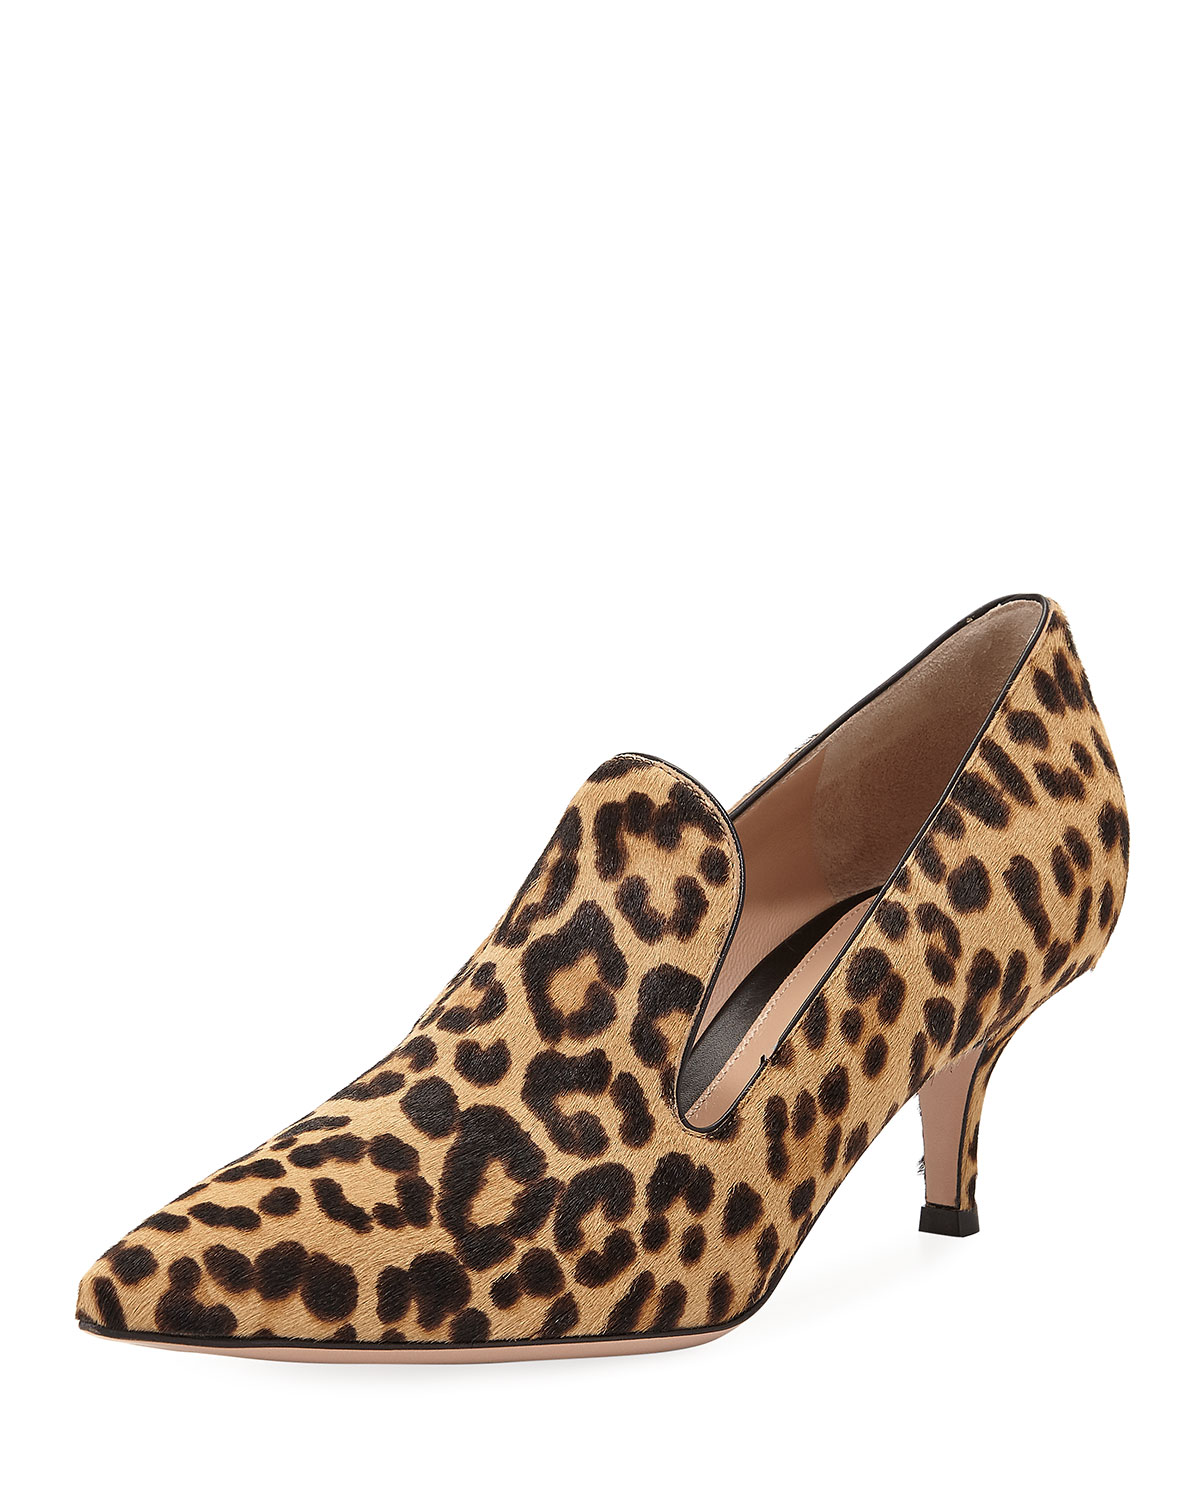 Leopard-Print Calf Hair Loafer Pump